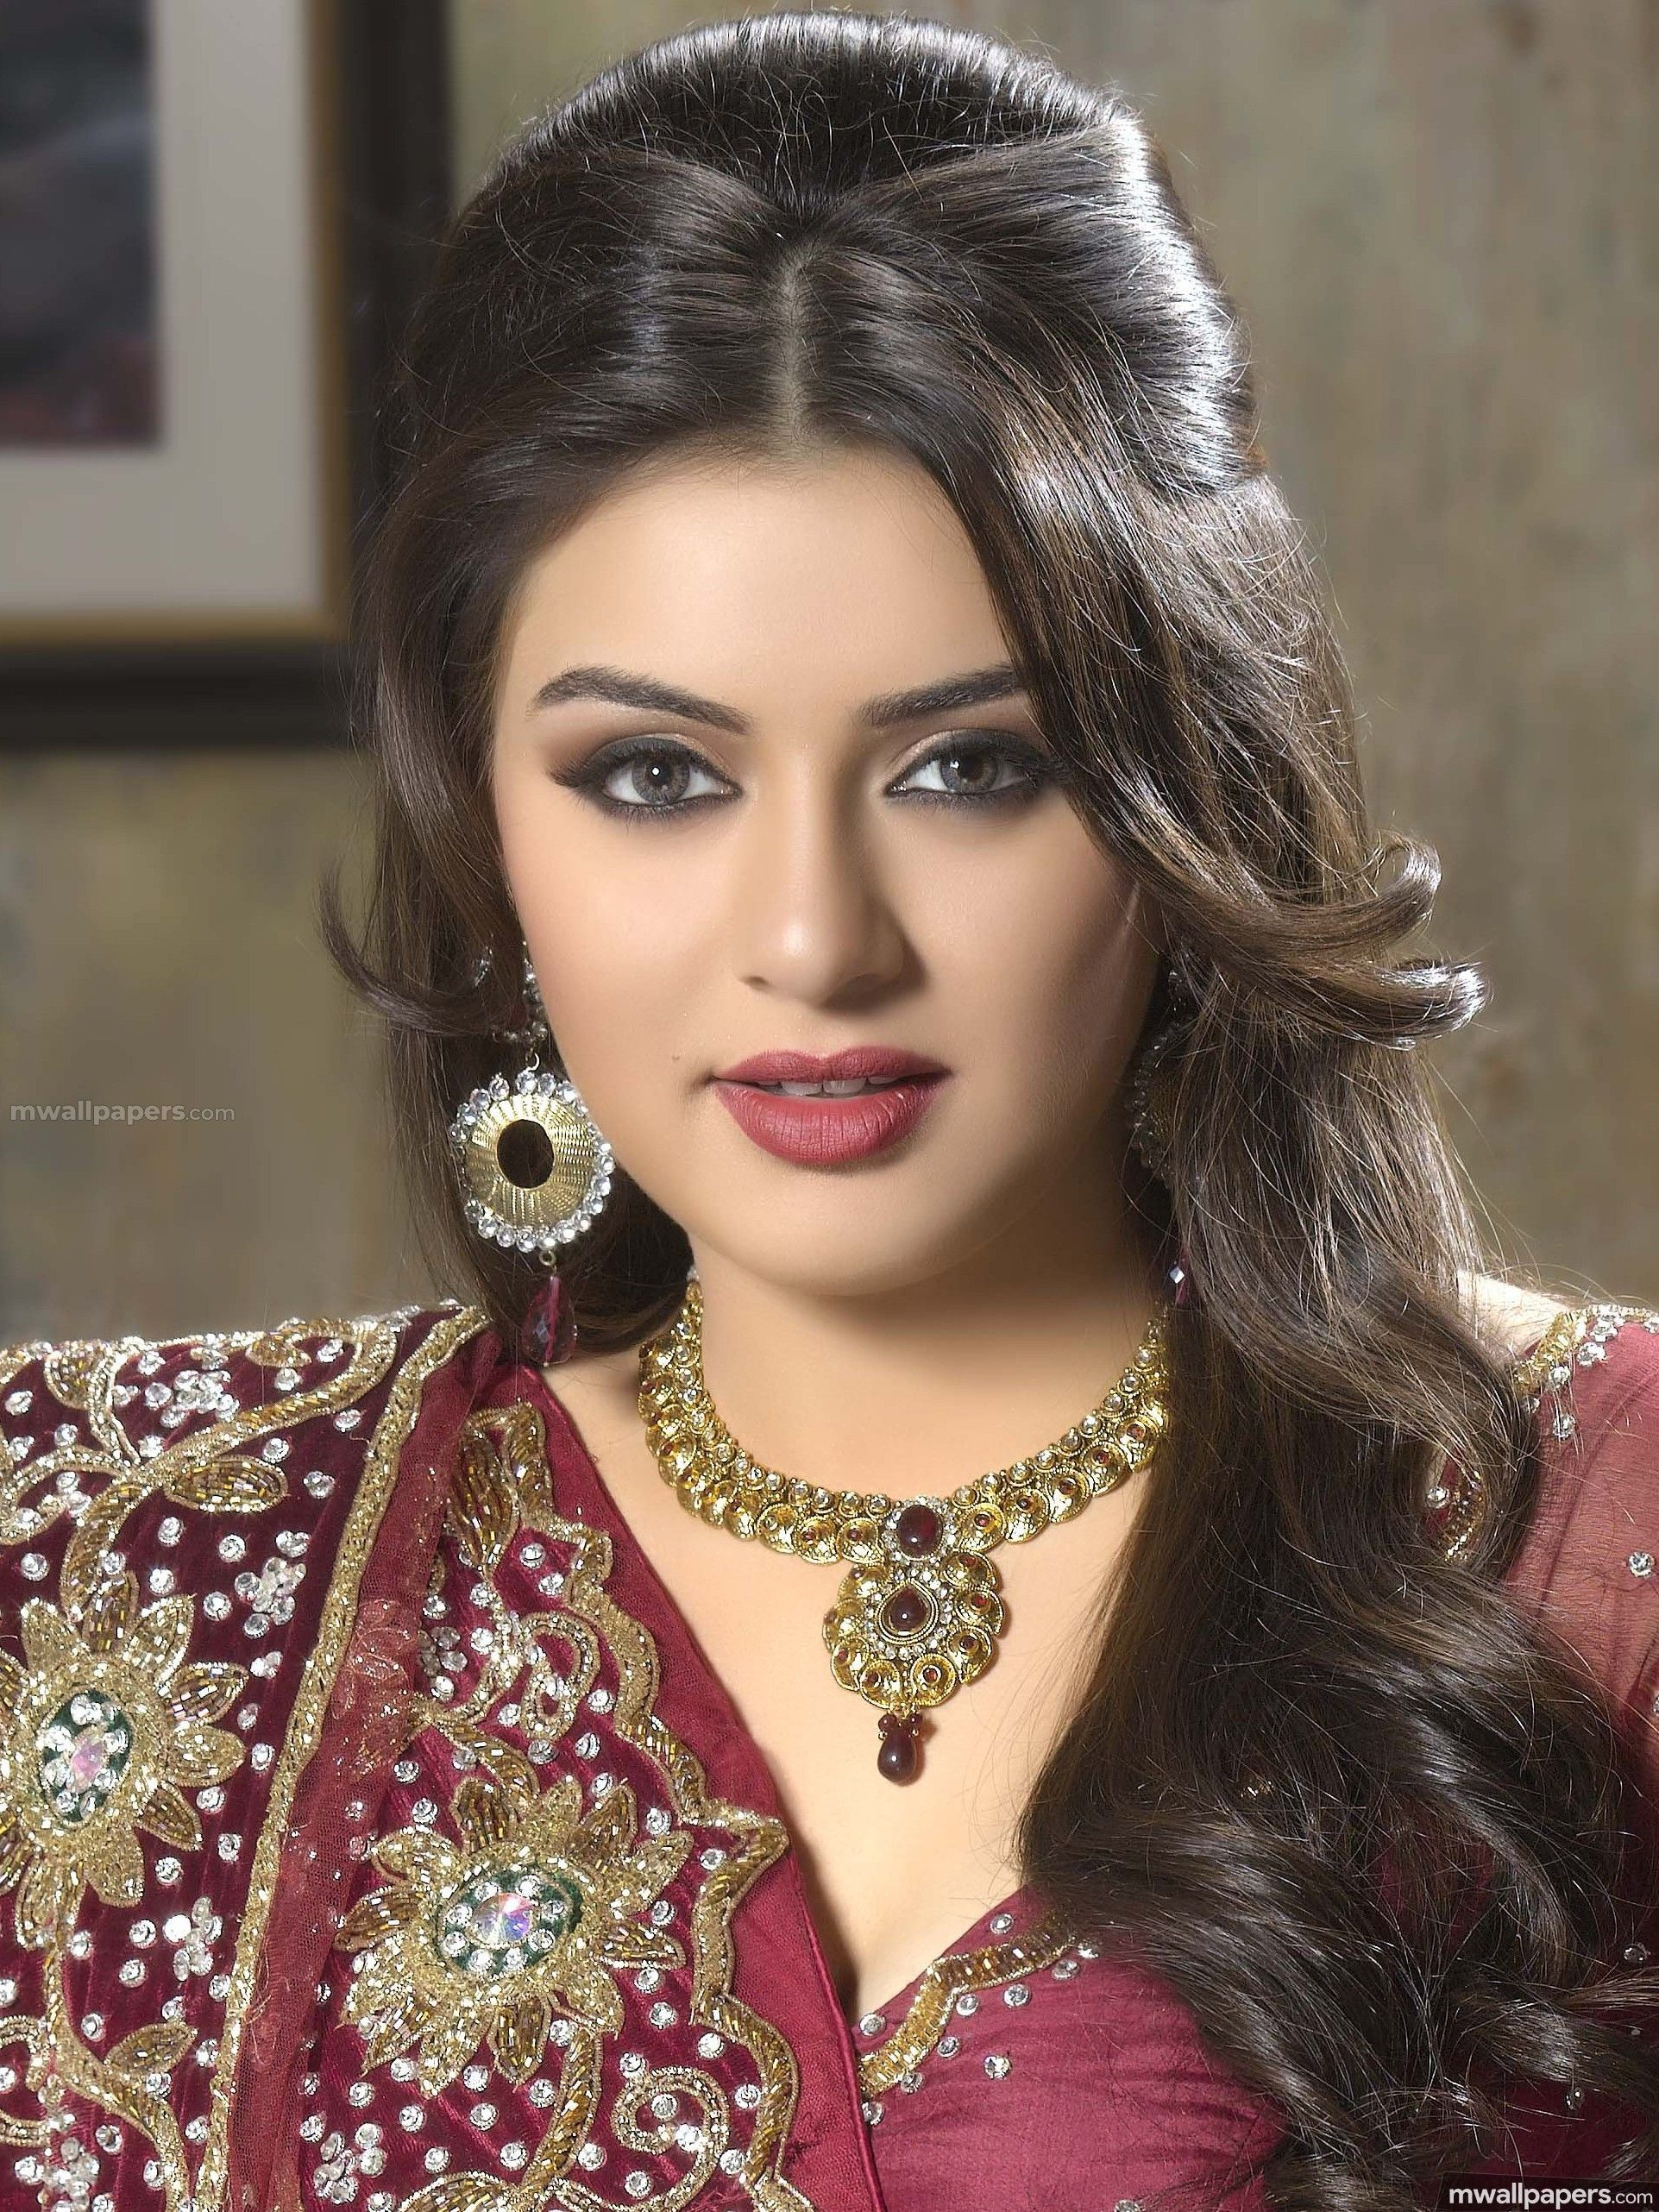 Hansika Motwani Beautiful Hd Photoshoot Stills 1080p Beauty